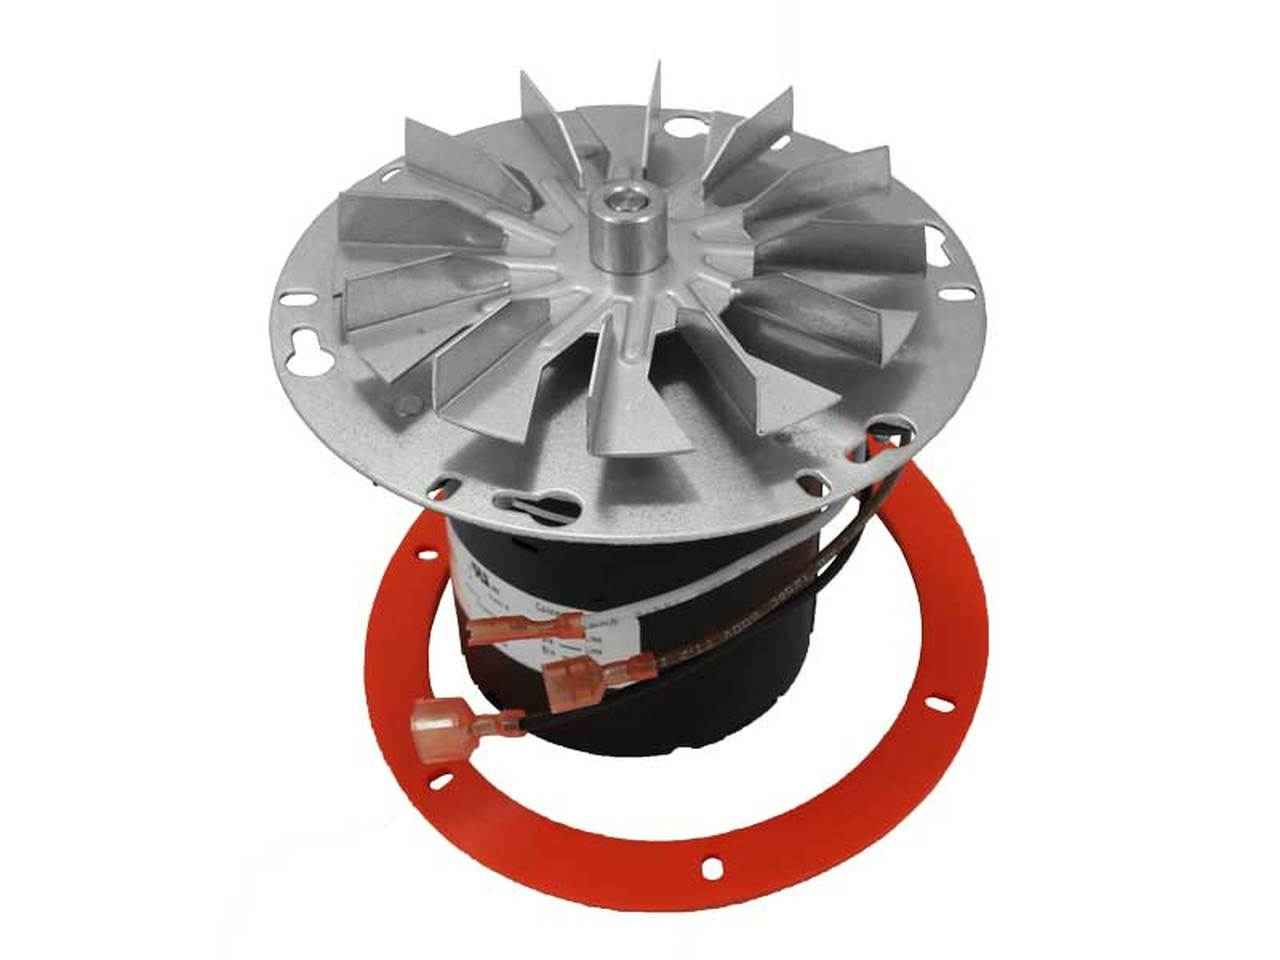 St. Croix Exhaust Combustion Blower Motor 80P20001R, 80P30521R